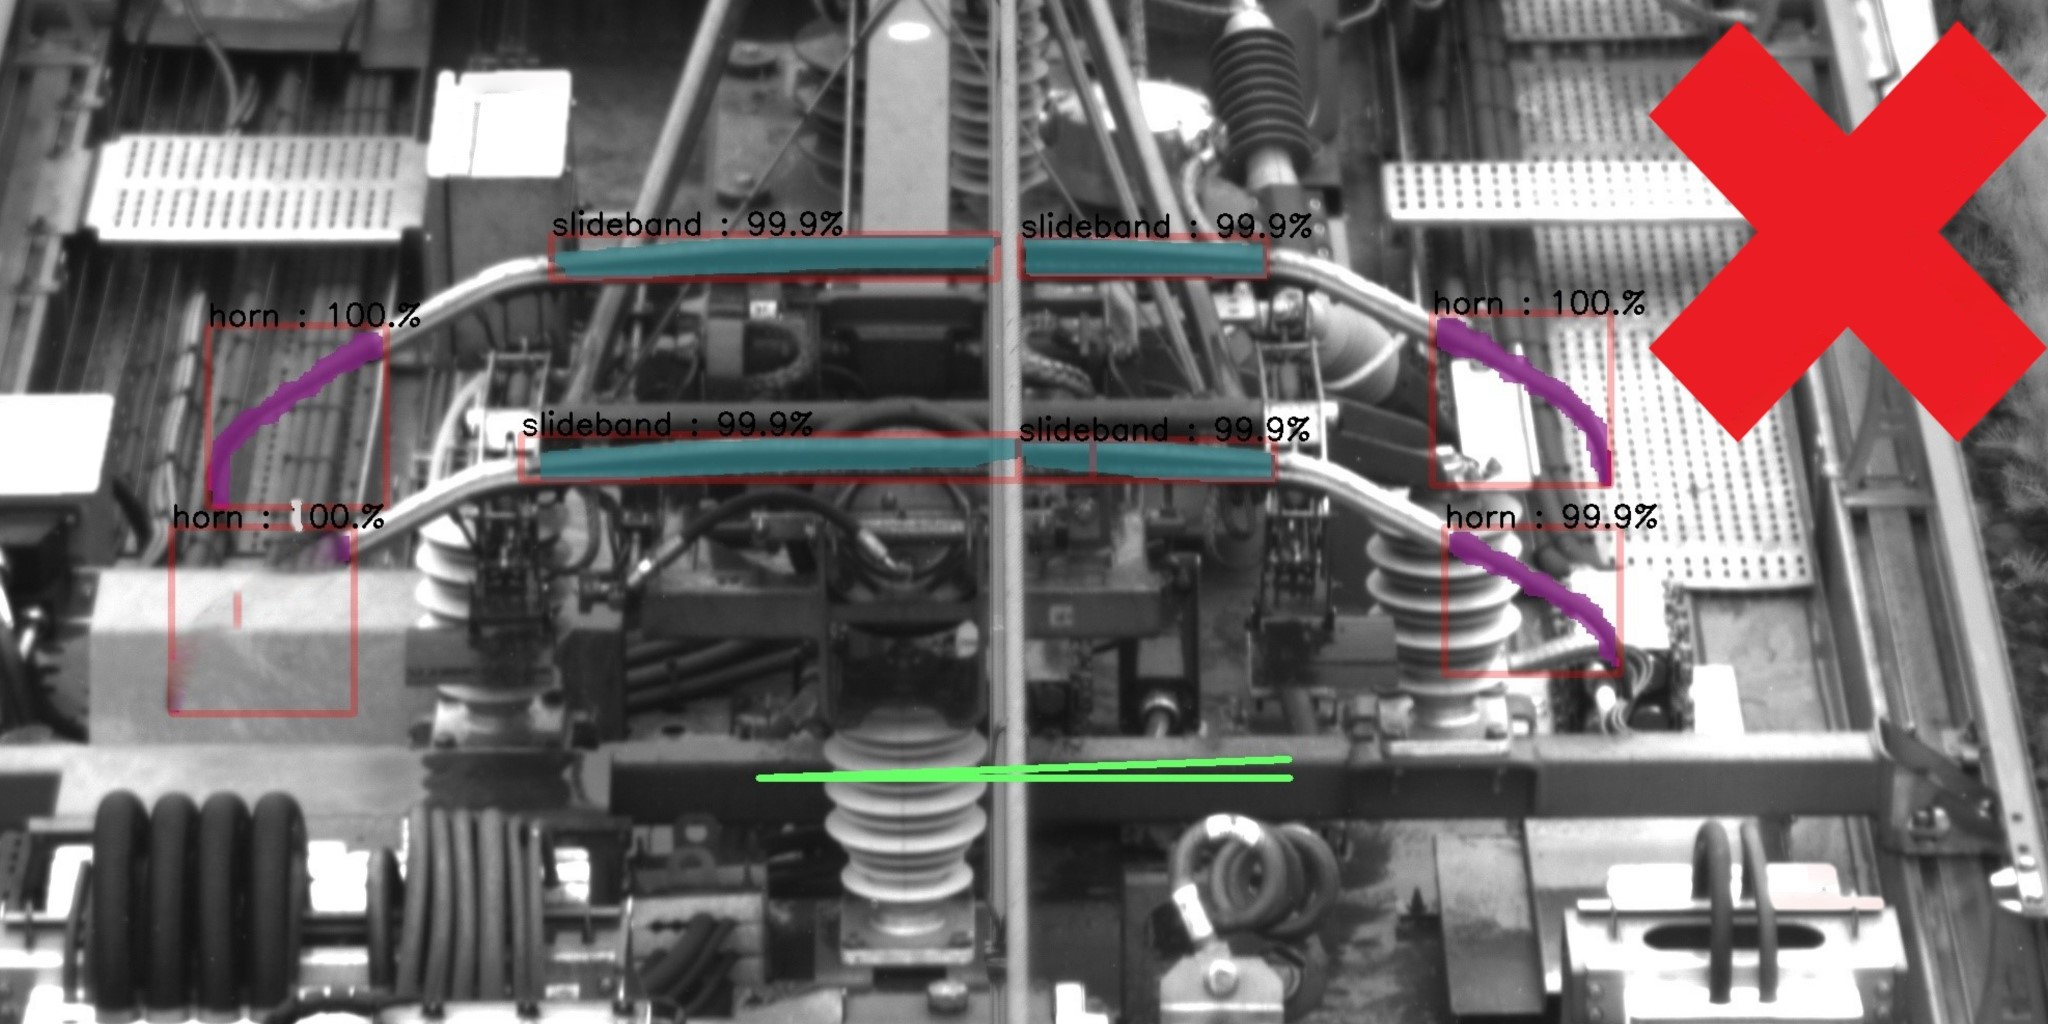 The embedded artificial intelligence coupled with image processing on a deep learning basis monitors the detected pantographs for compliance and locates faults. The process entails locating and detecting the presence of all horns and the location of contact strips. Moreover, it verifies that the pantograph is perpendicular to the train's axis. In this image the state of the pantograph is satisfactory.